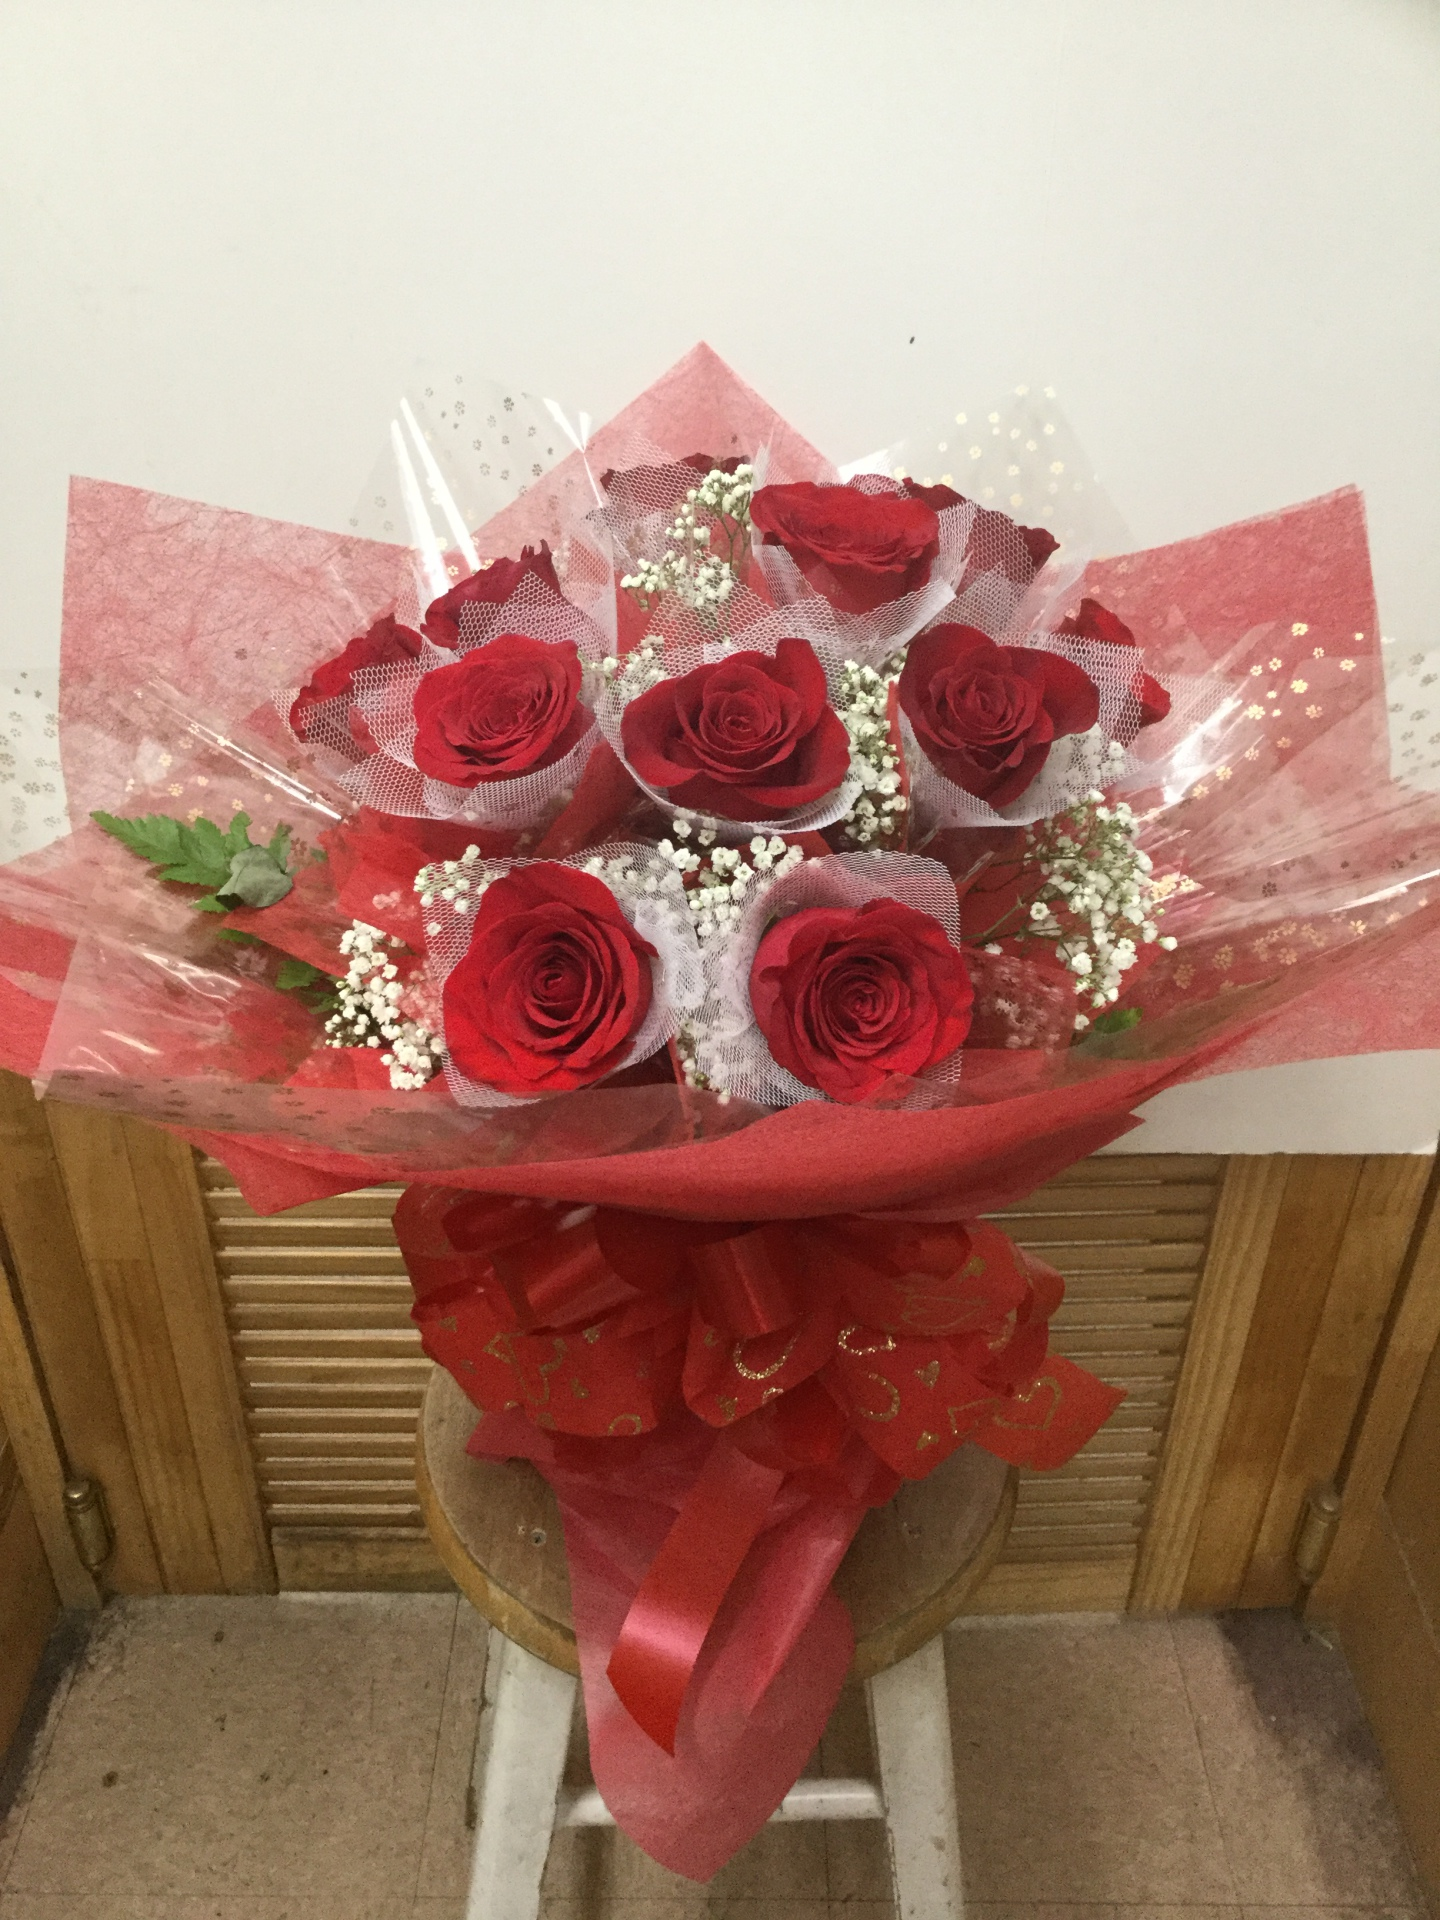 One Dozen Red Roses - All-Around HK Wrap